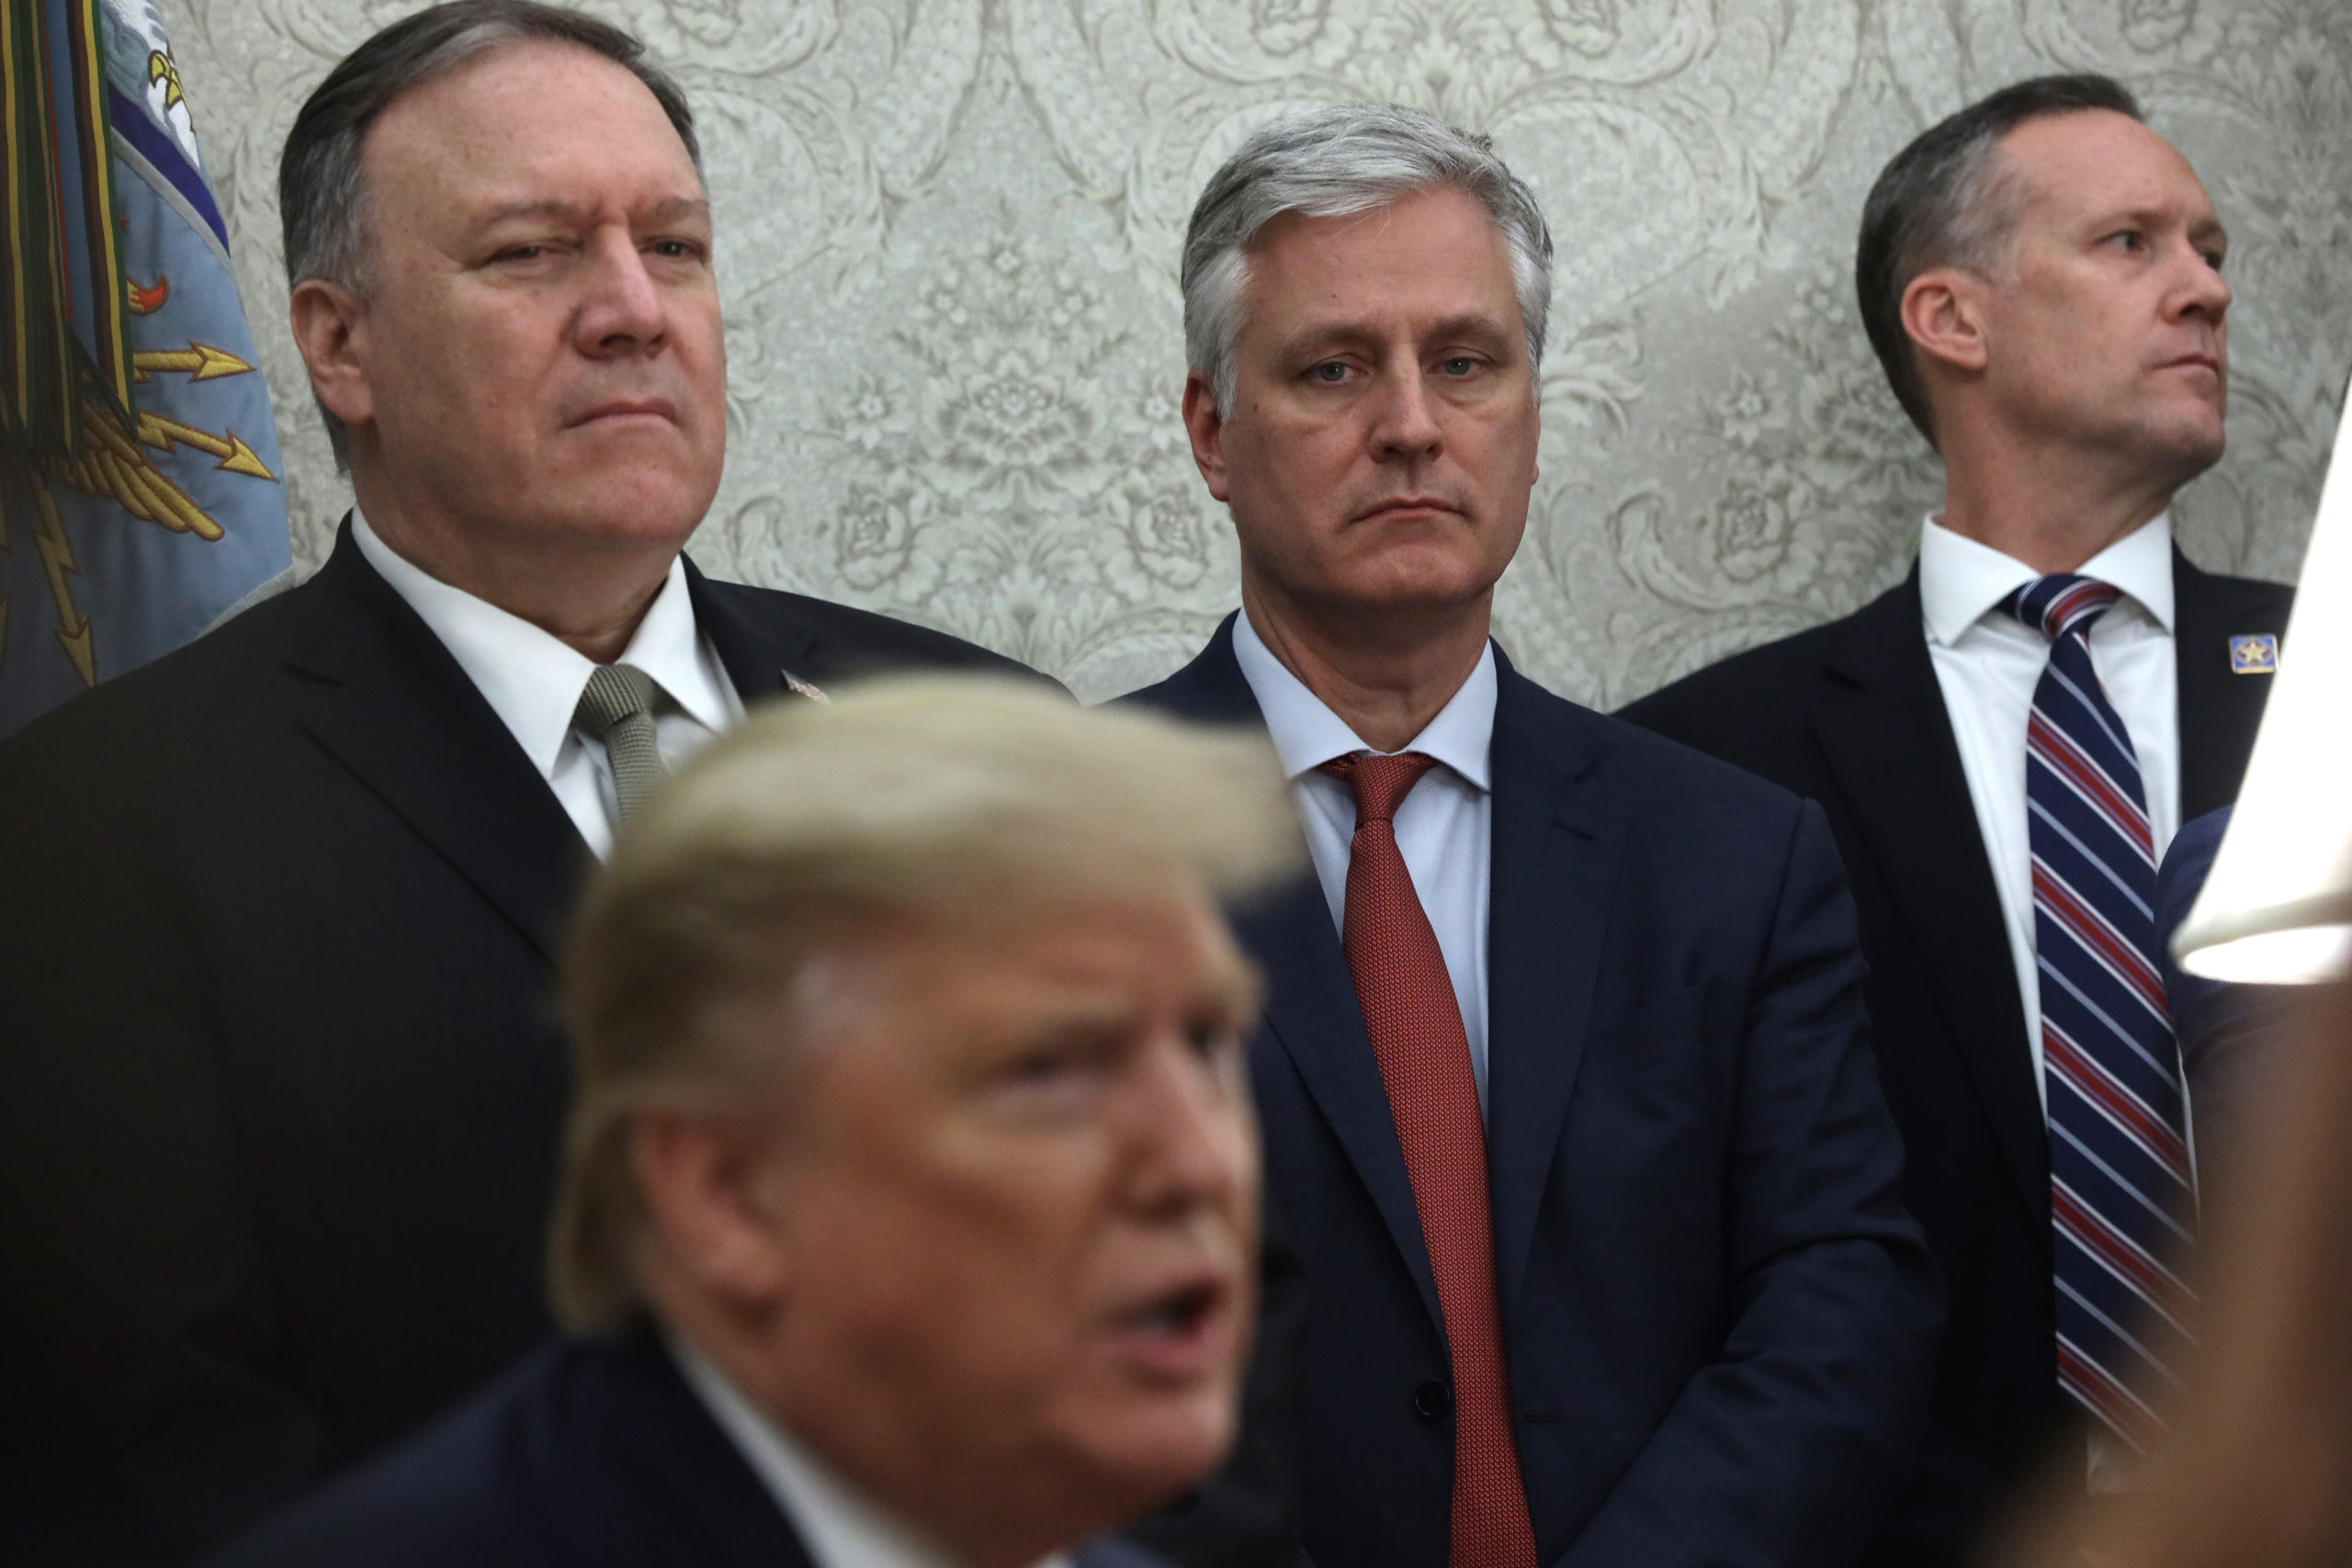 WASHINGTON, DC - DECEMBER 17: U.S. President Donald Trump speaks as Secretary of State Mike Pompeo, and National Security Adviser Robert O'Brien listen during a meeting with Guatemalan President Jimmy Morales in the Oval Office of the White House December 17, 2019 in Washington, DC. President Morales is the first Central American leader to sign and implement the Asylum Cooperation Agreement with the U.S. (Photo by Alex Wong/Getty Images)